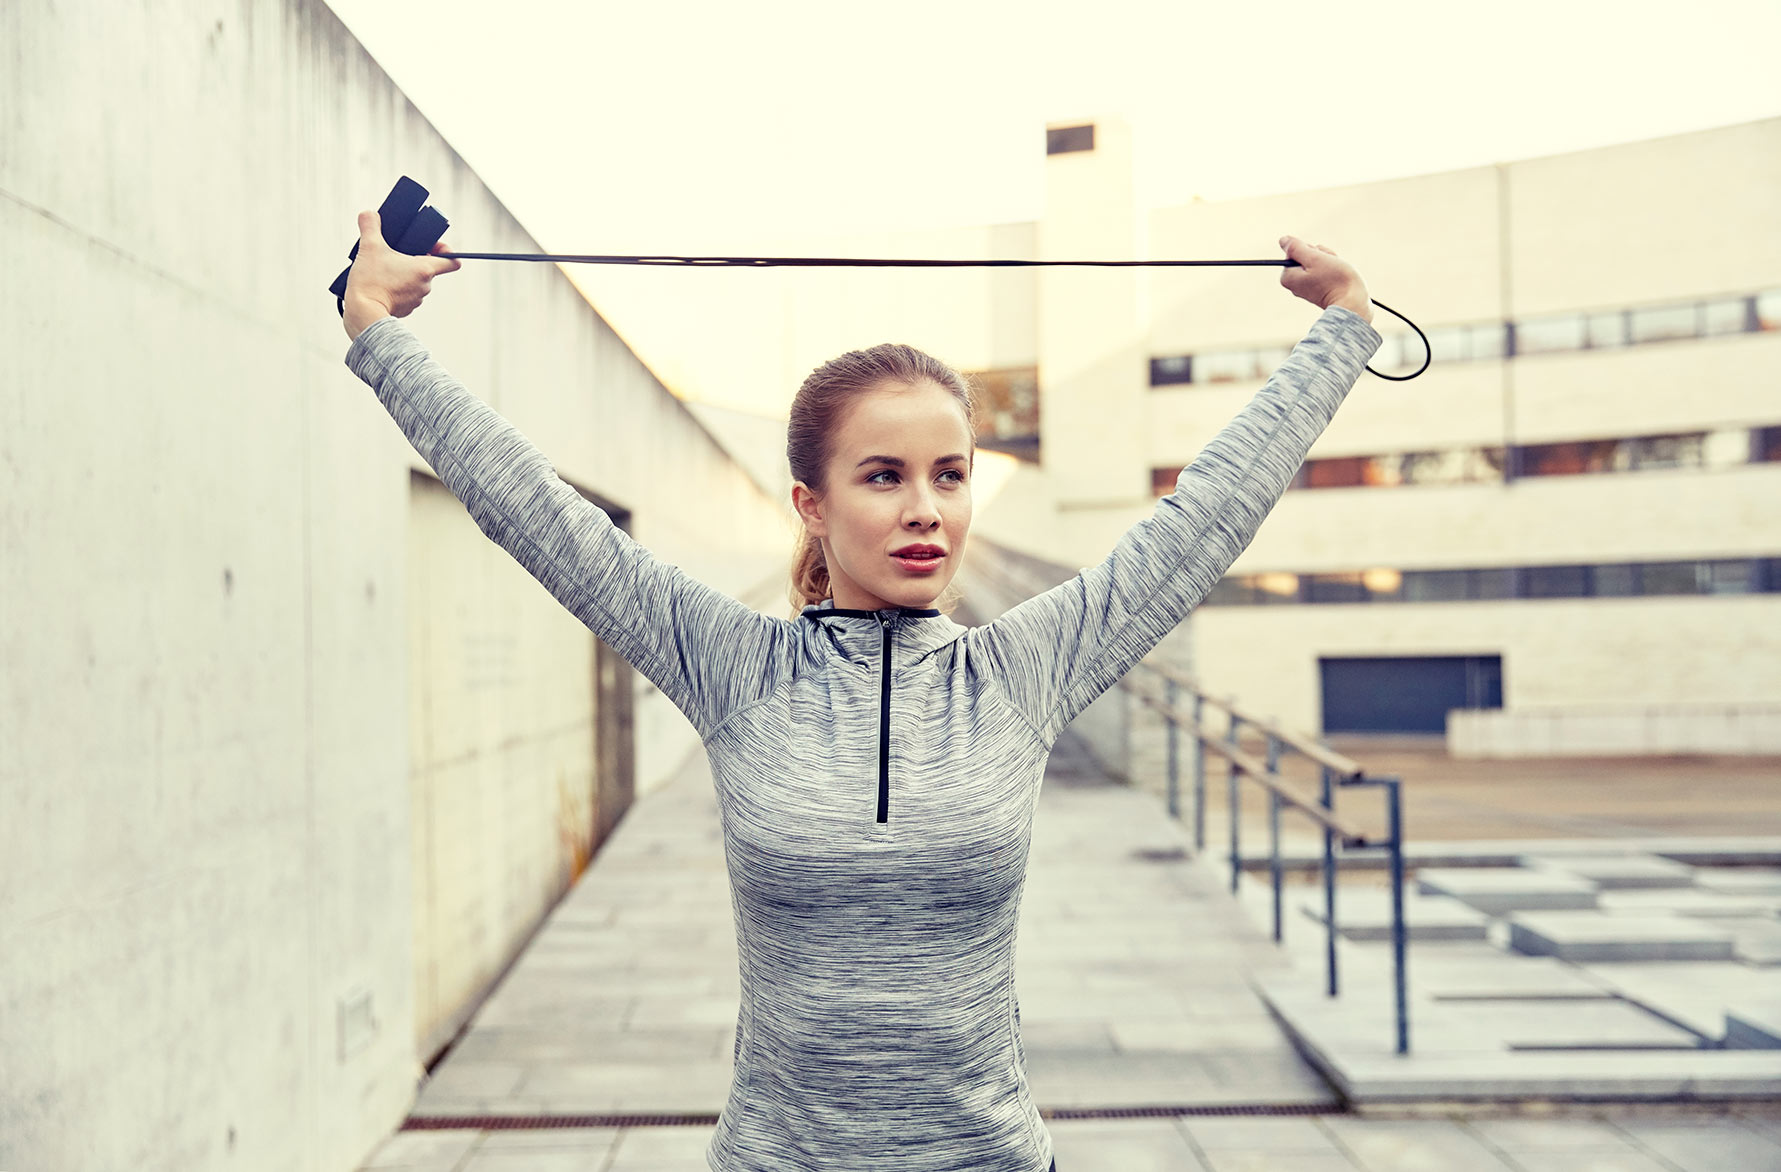 how to do a double under jump rope